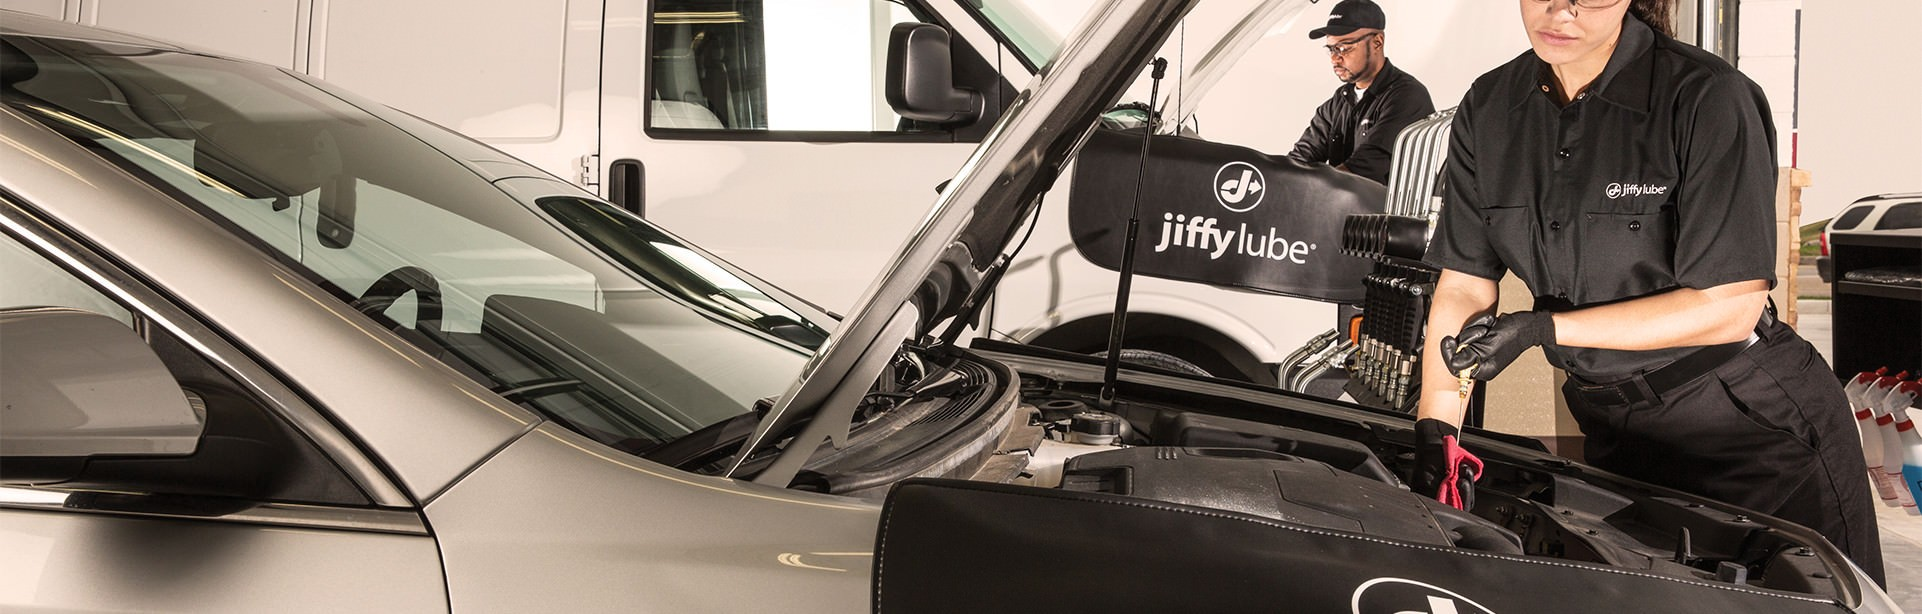 Jiffy Lube Knoxville Fuel System Cleaning